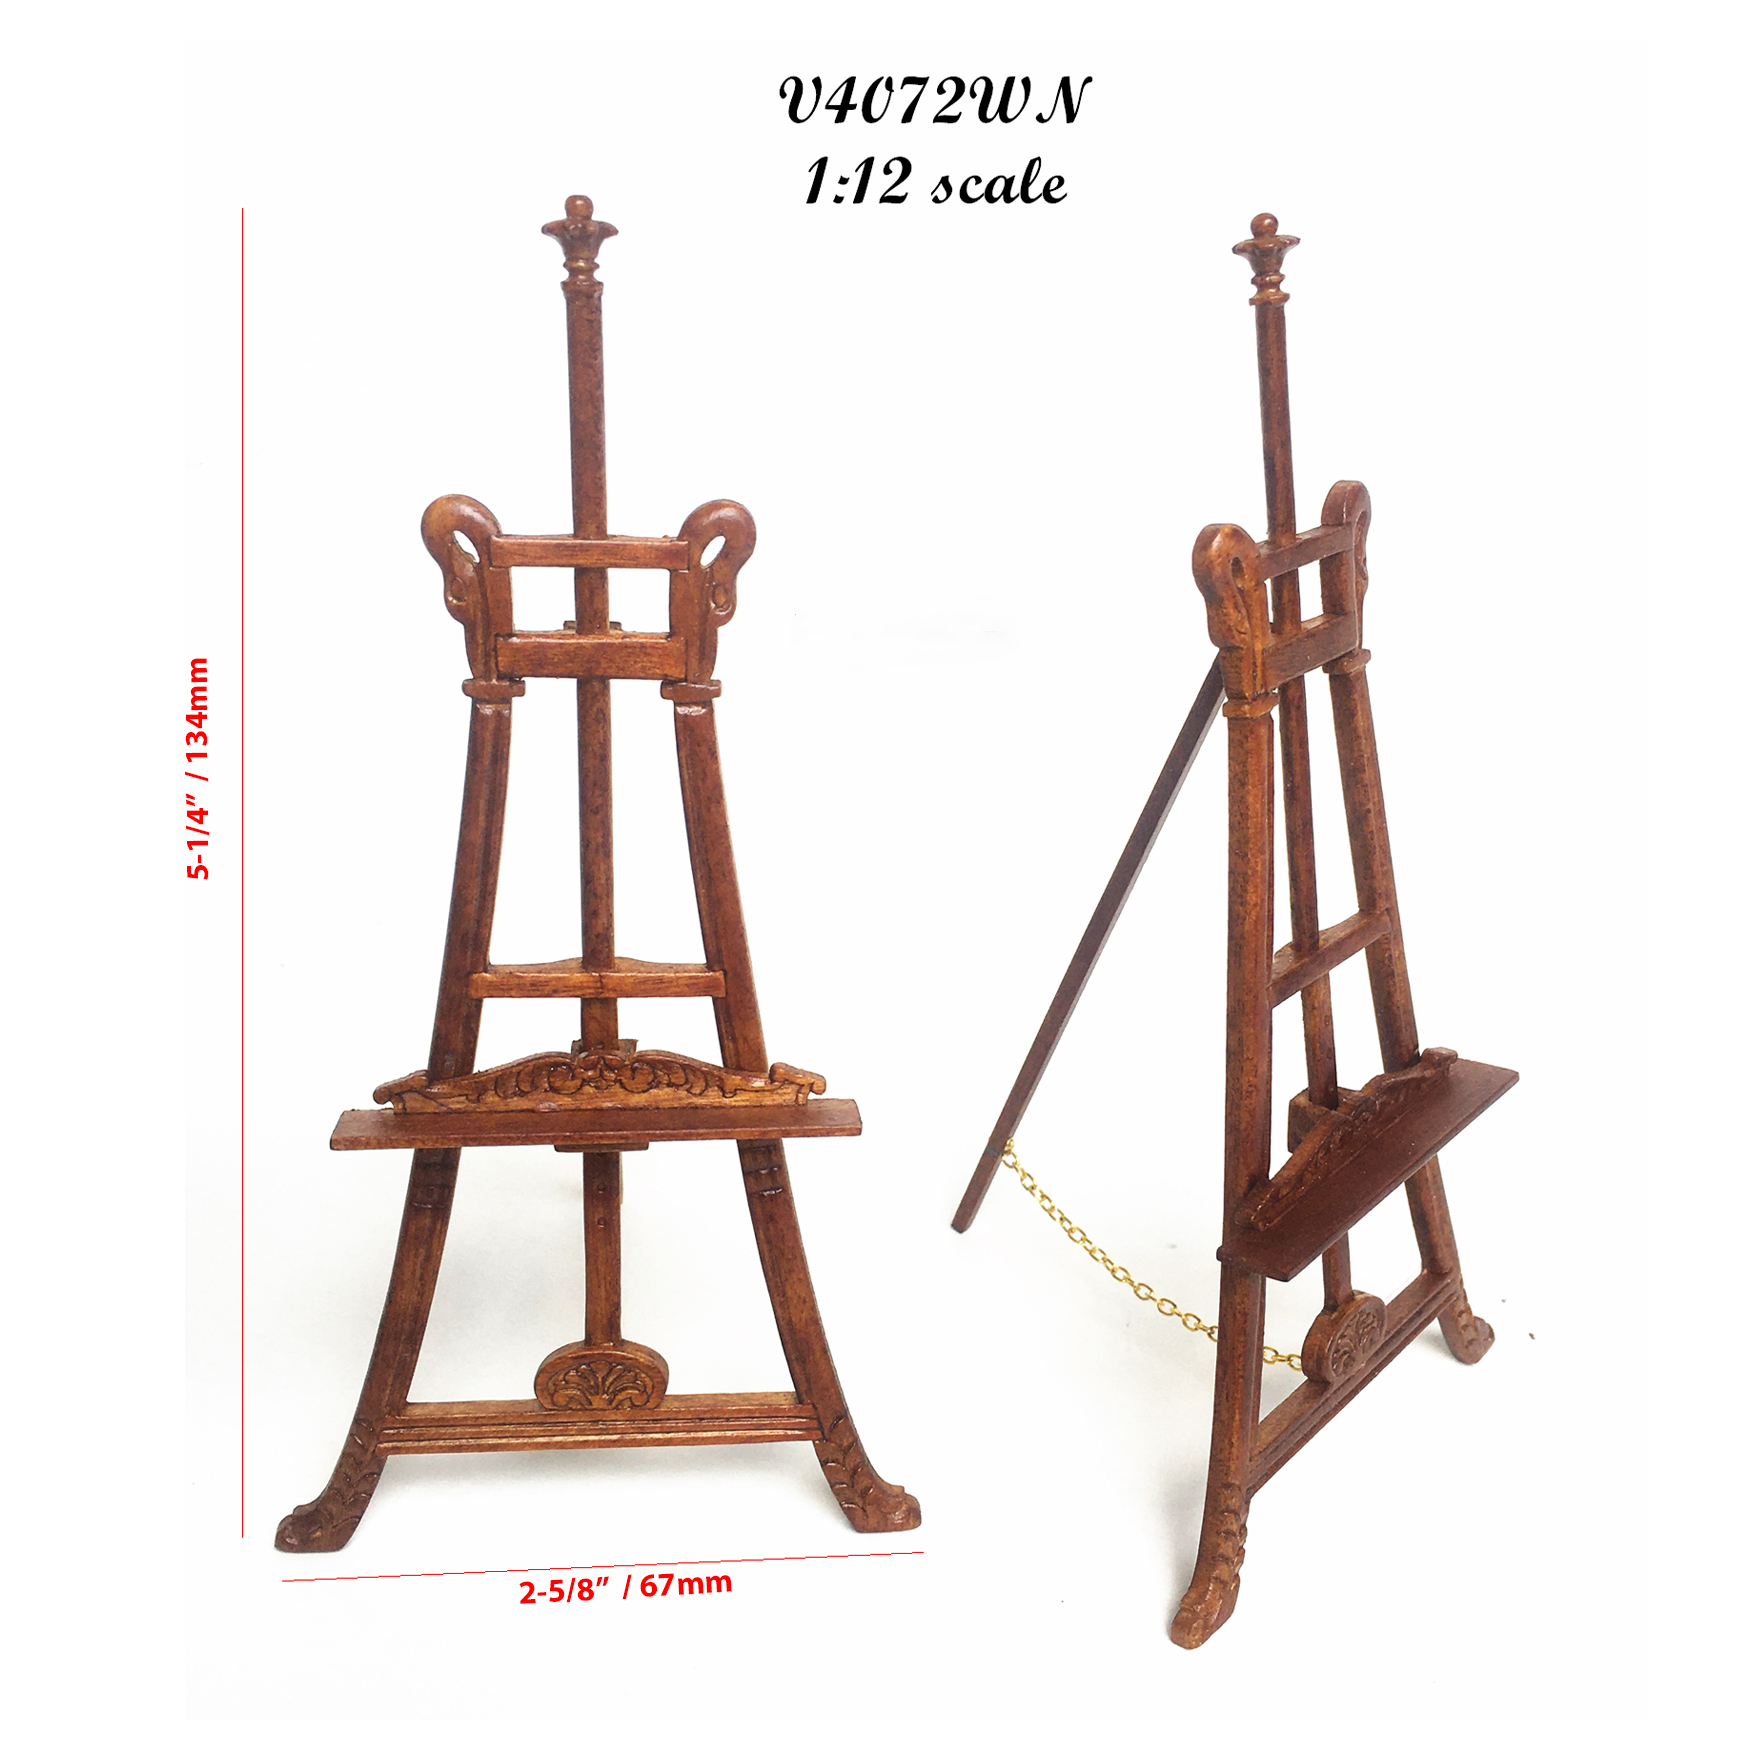 French wooden Walnut paintings stand SWAN-CARVED ADJUSTABLE EASEL 1:12 dollhouse